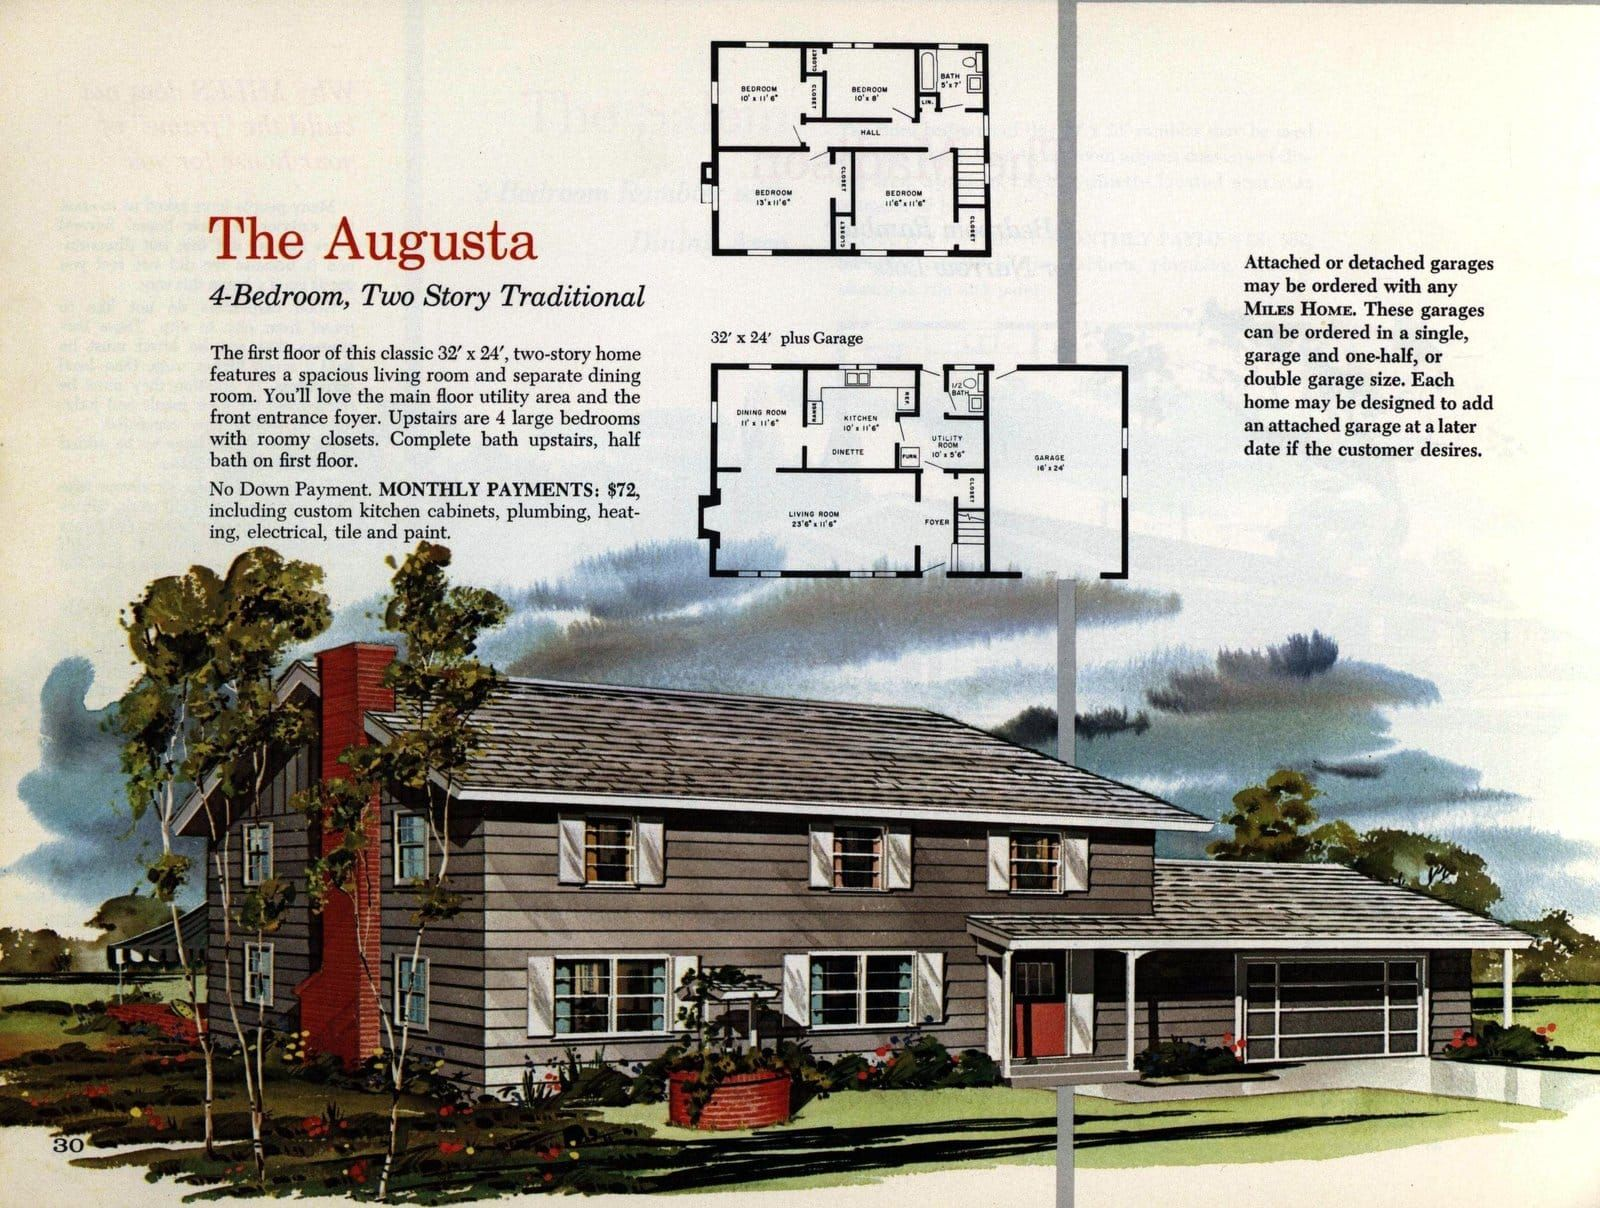 See 125 Vintage 60s Home Plans Used To Design Build Millions Of Mid Century Houses Across America House Plans Mid Century House Building Design